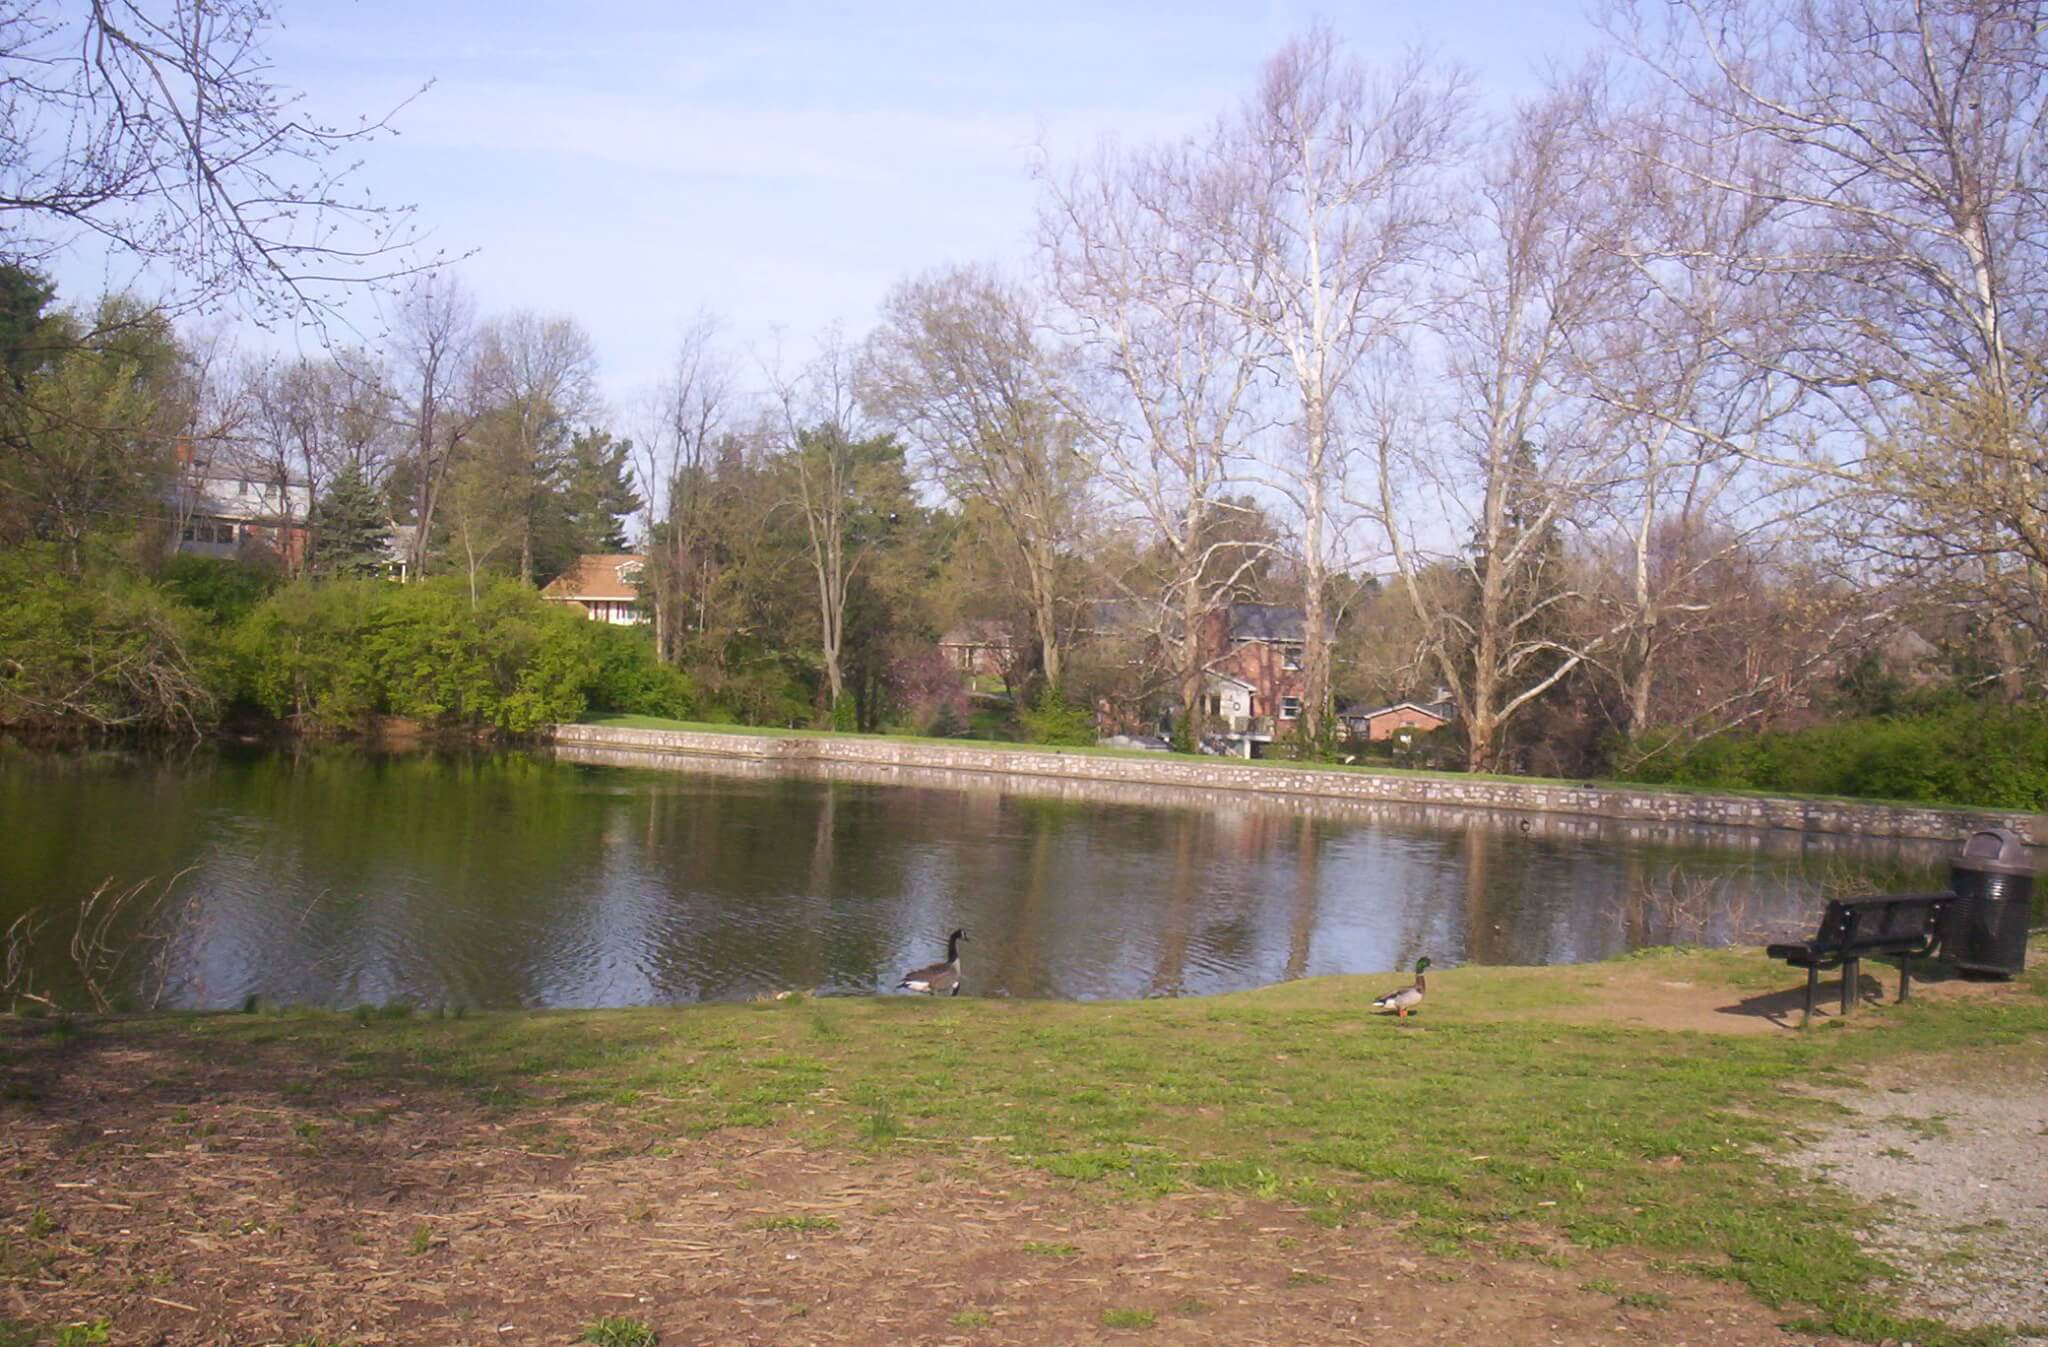 Duck pond is a pleasant place to go -- to feed the ducks, of course.